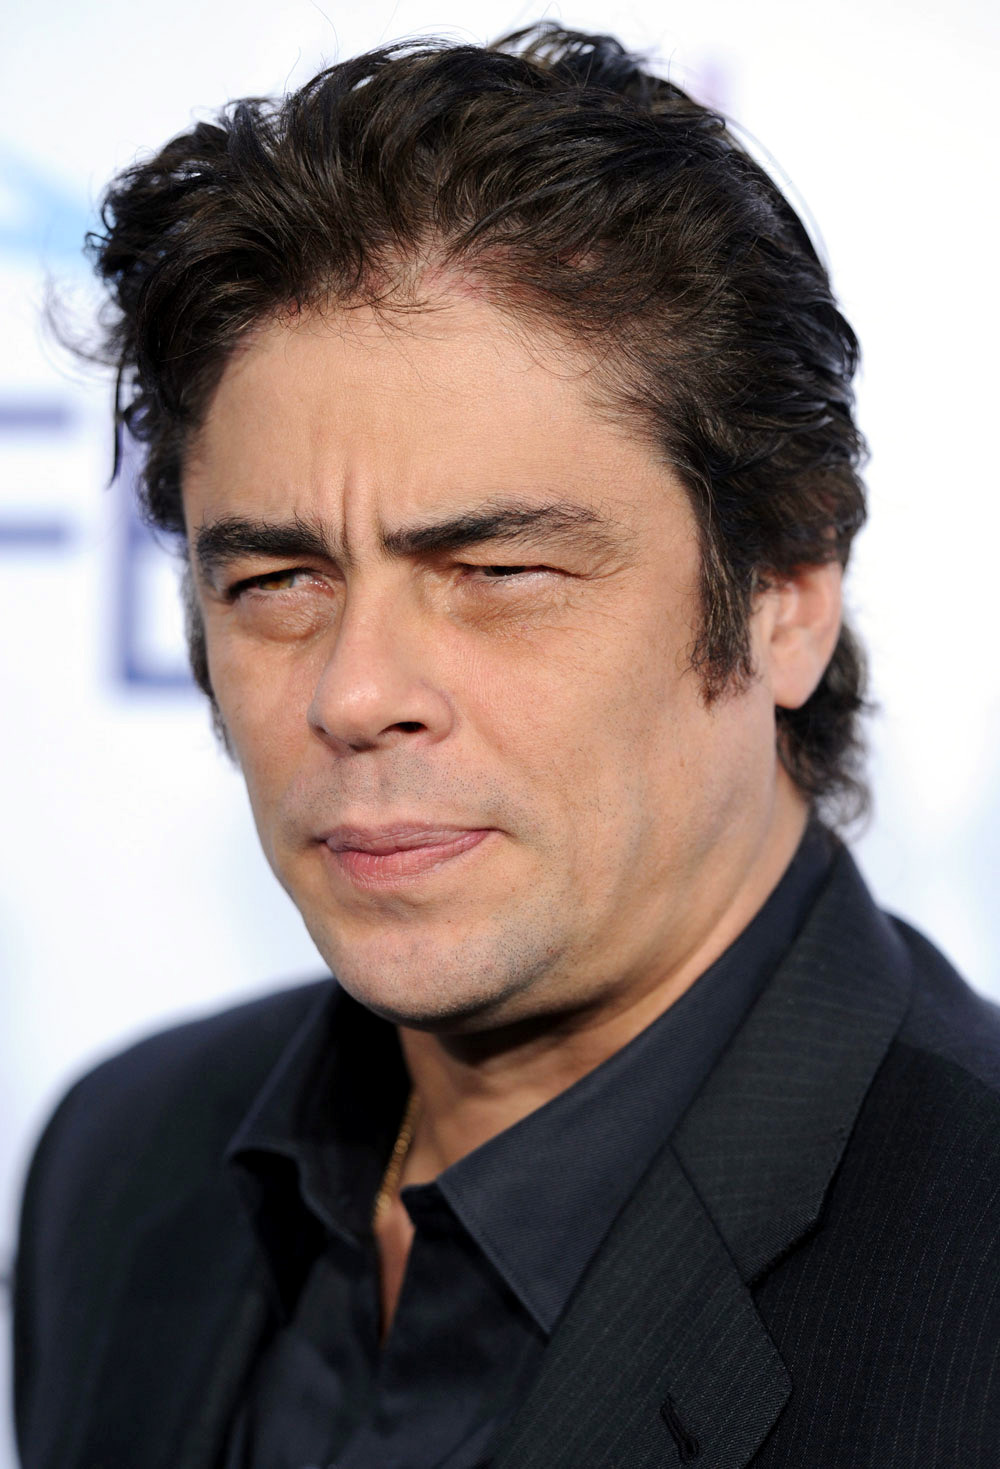 benicio del toro franky four fingersbenicio del toro young, benicio del toro ezra, benicio del toro height, benicio del toro 2017, benicio del toro wiki, benicio del toro filmography, benicio del toro gif, benicio del toro wife, benicio del toro films, benicio del toro filmleri, benicio del toro twitter, benicio del toro kimberly stewart, benicio del toro peliculas, benicio del toro interview, benicio del toro and daughter, benicio del toro twitter official, benicio del toro franky four fingers, benicio del toro horoscope, benicio del toro david duchovny, benicio del toro sicario